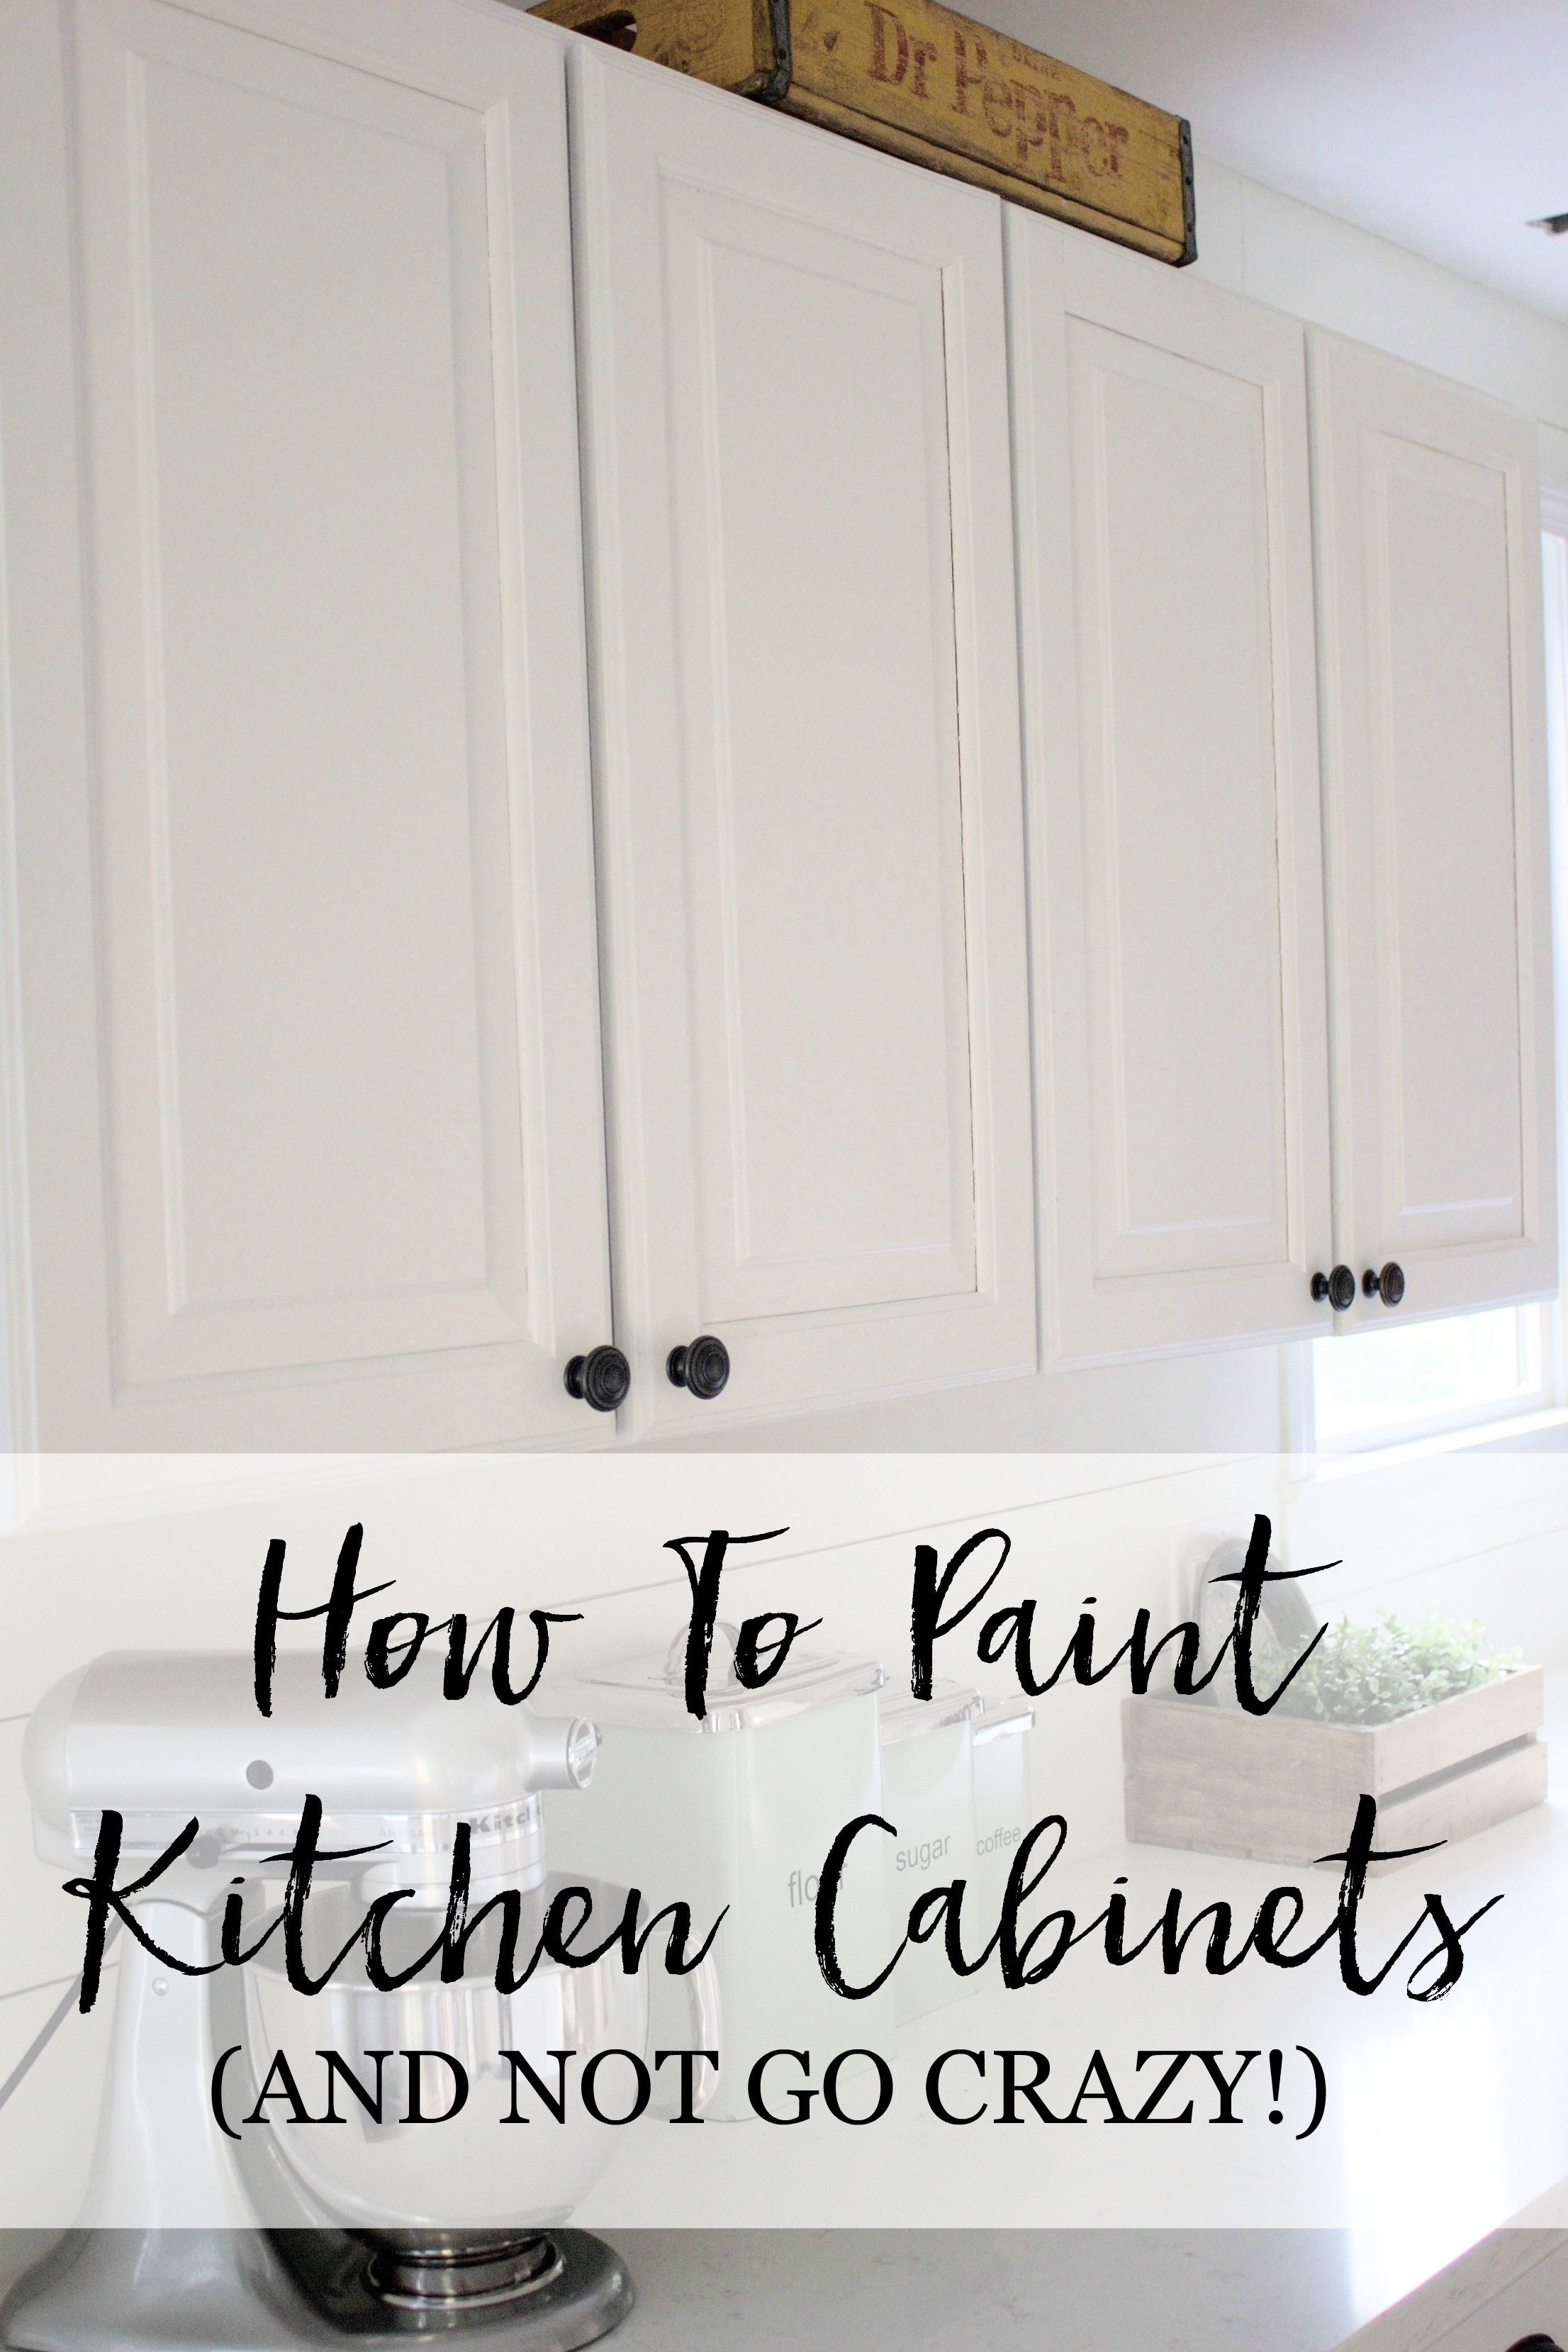 How to Paint Cabinet Doors without Brush Marks Elegant Home How to Paint Kitchen Cabinets Lauren Mcbride